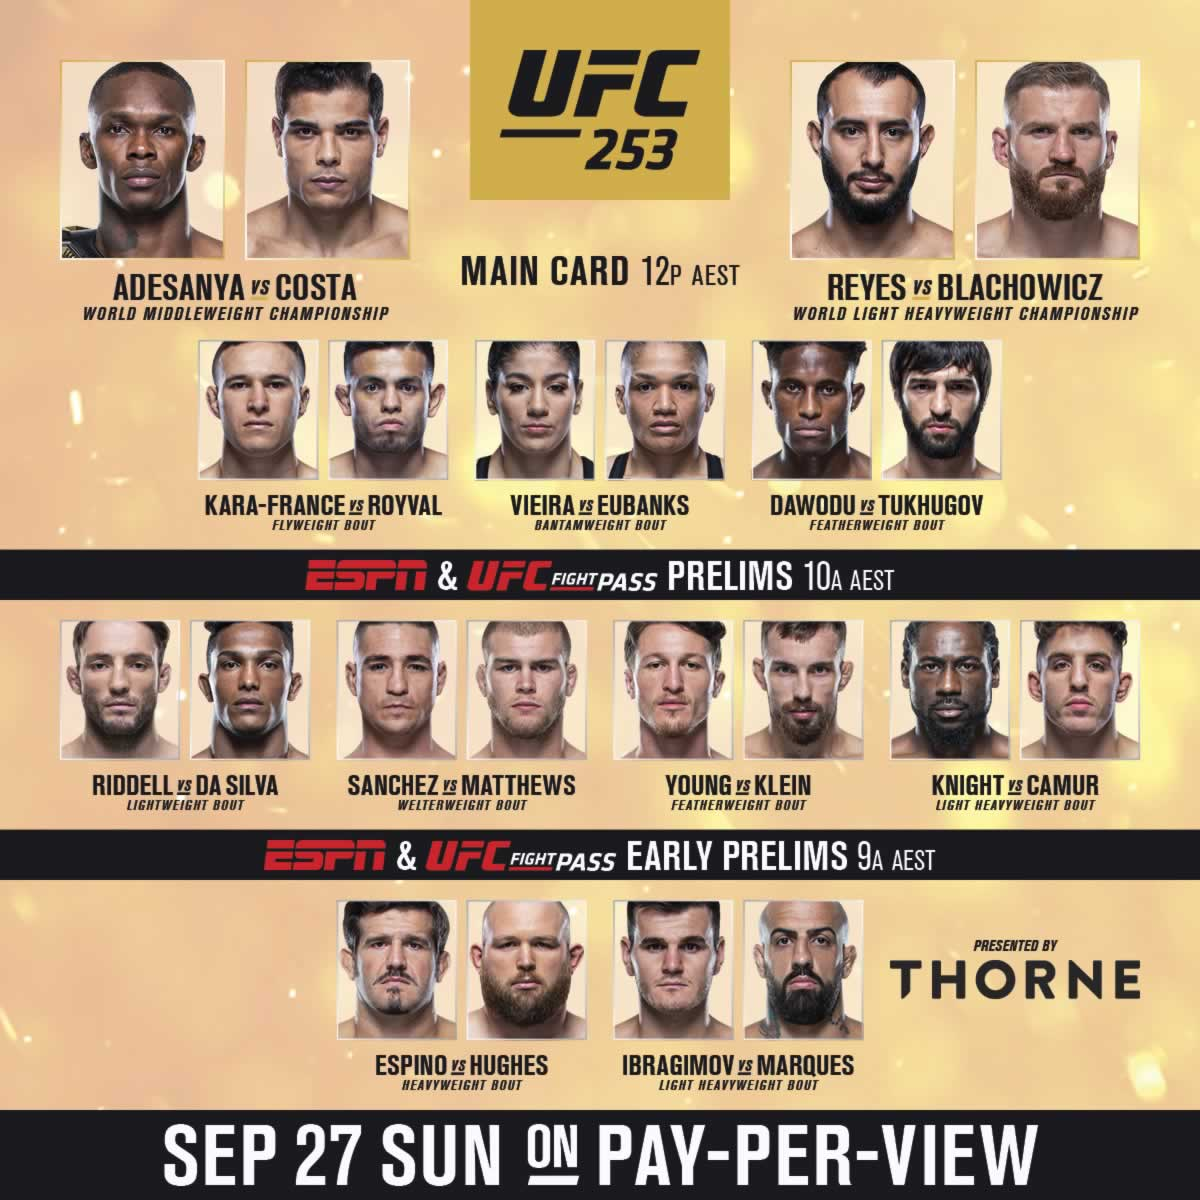 UFC 253 fight card